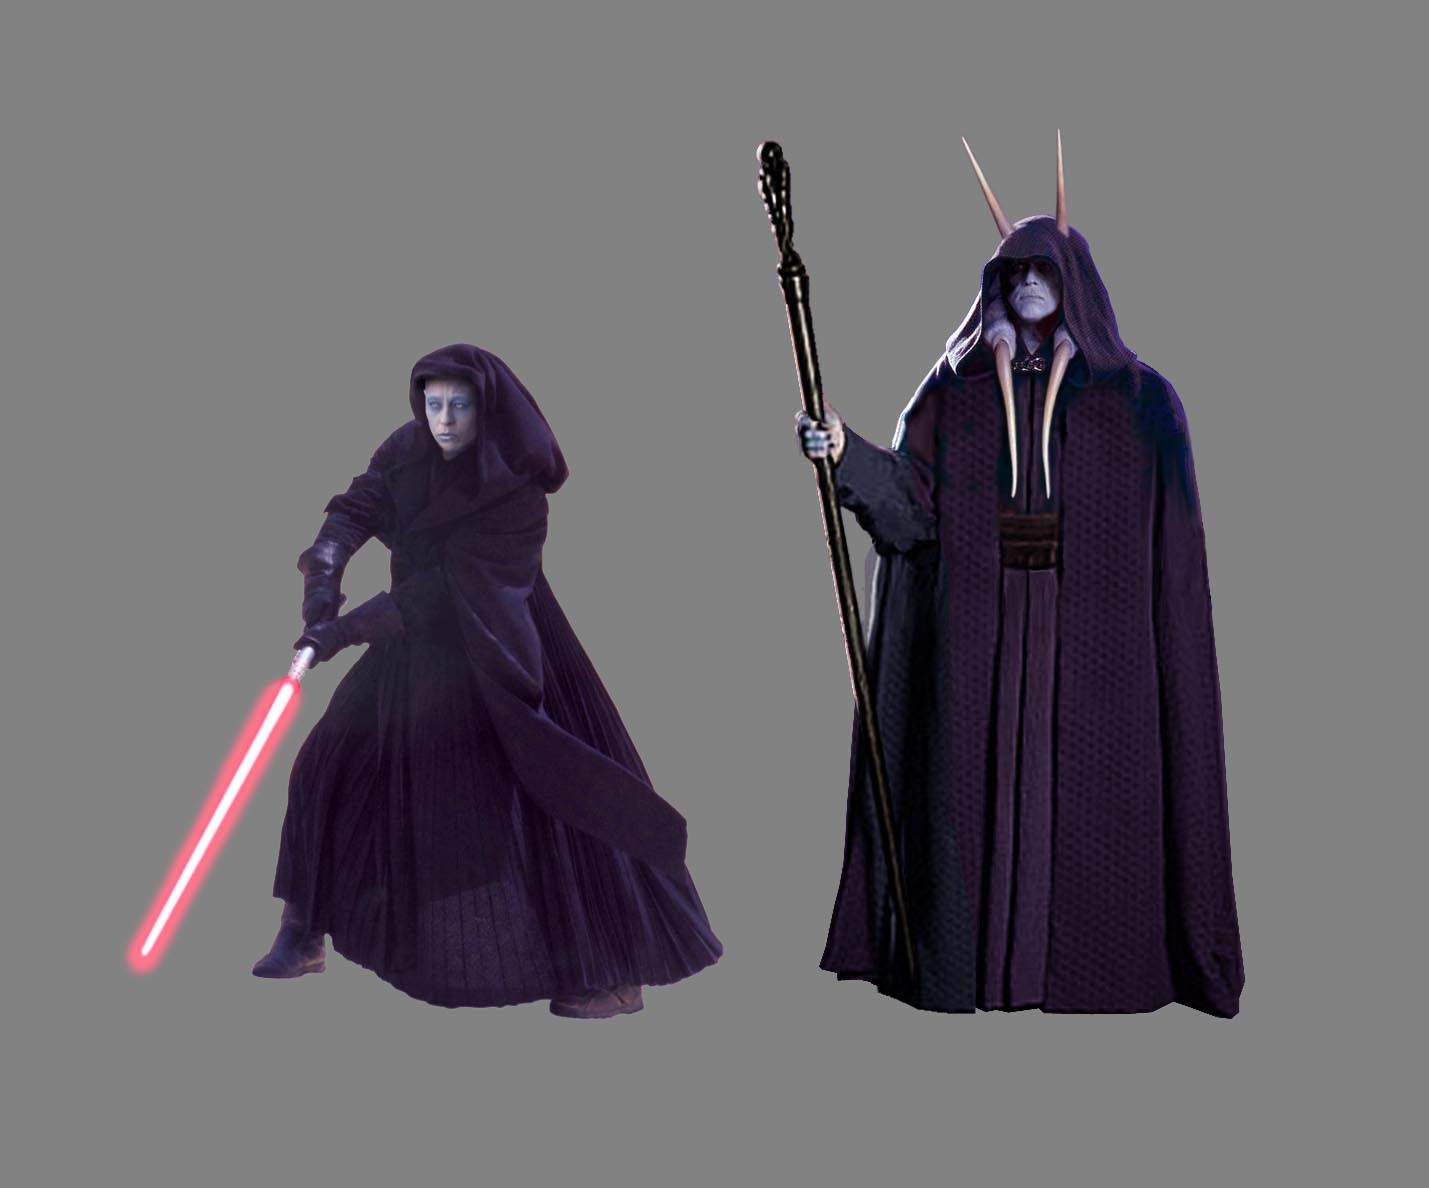 Darth Kayos and Darth Monstross. The two Lords of the Sith by Scott.